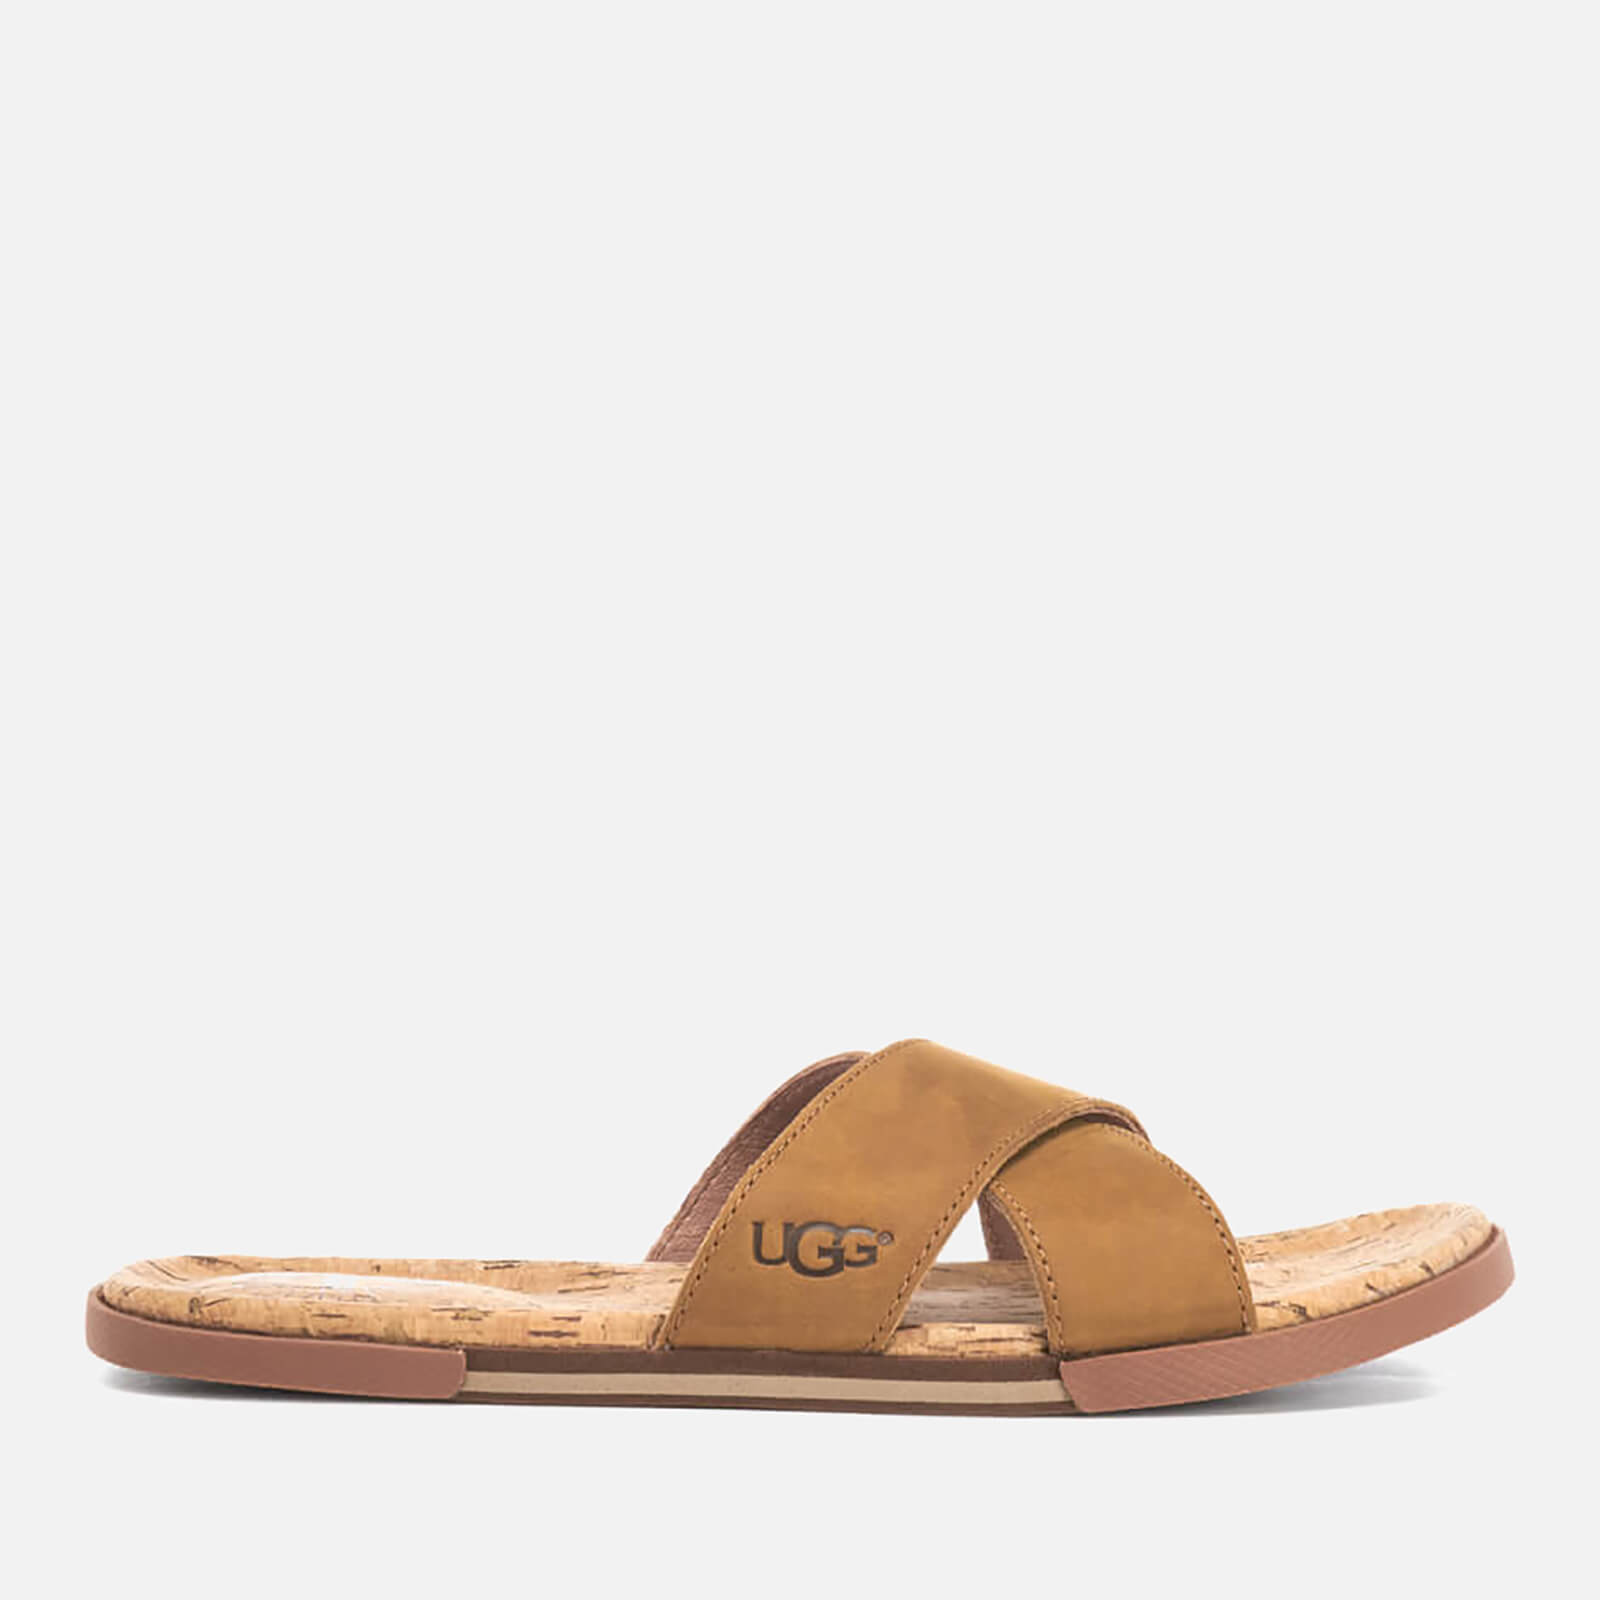 51785fcae86 UGG Men's Ithan Cork Double Strap Leather Slide Sandals - Tamarind